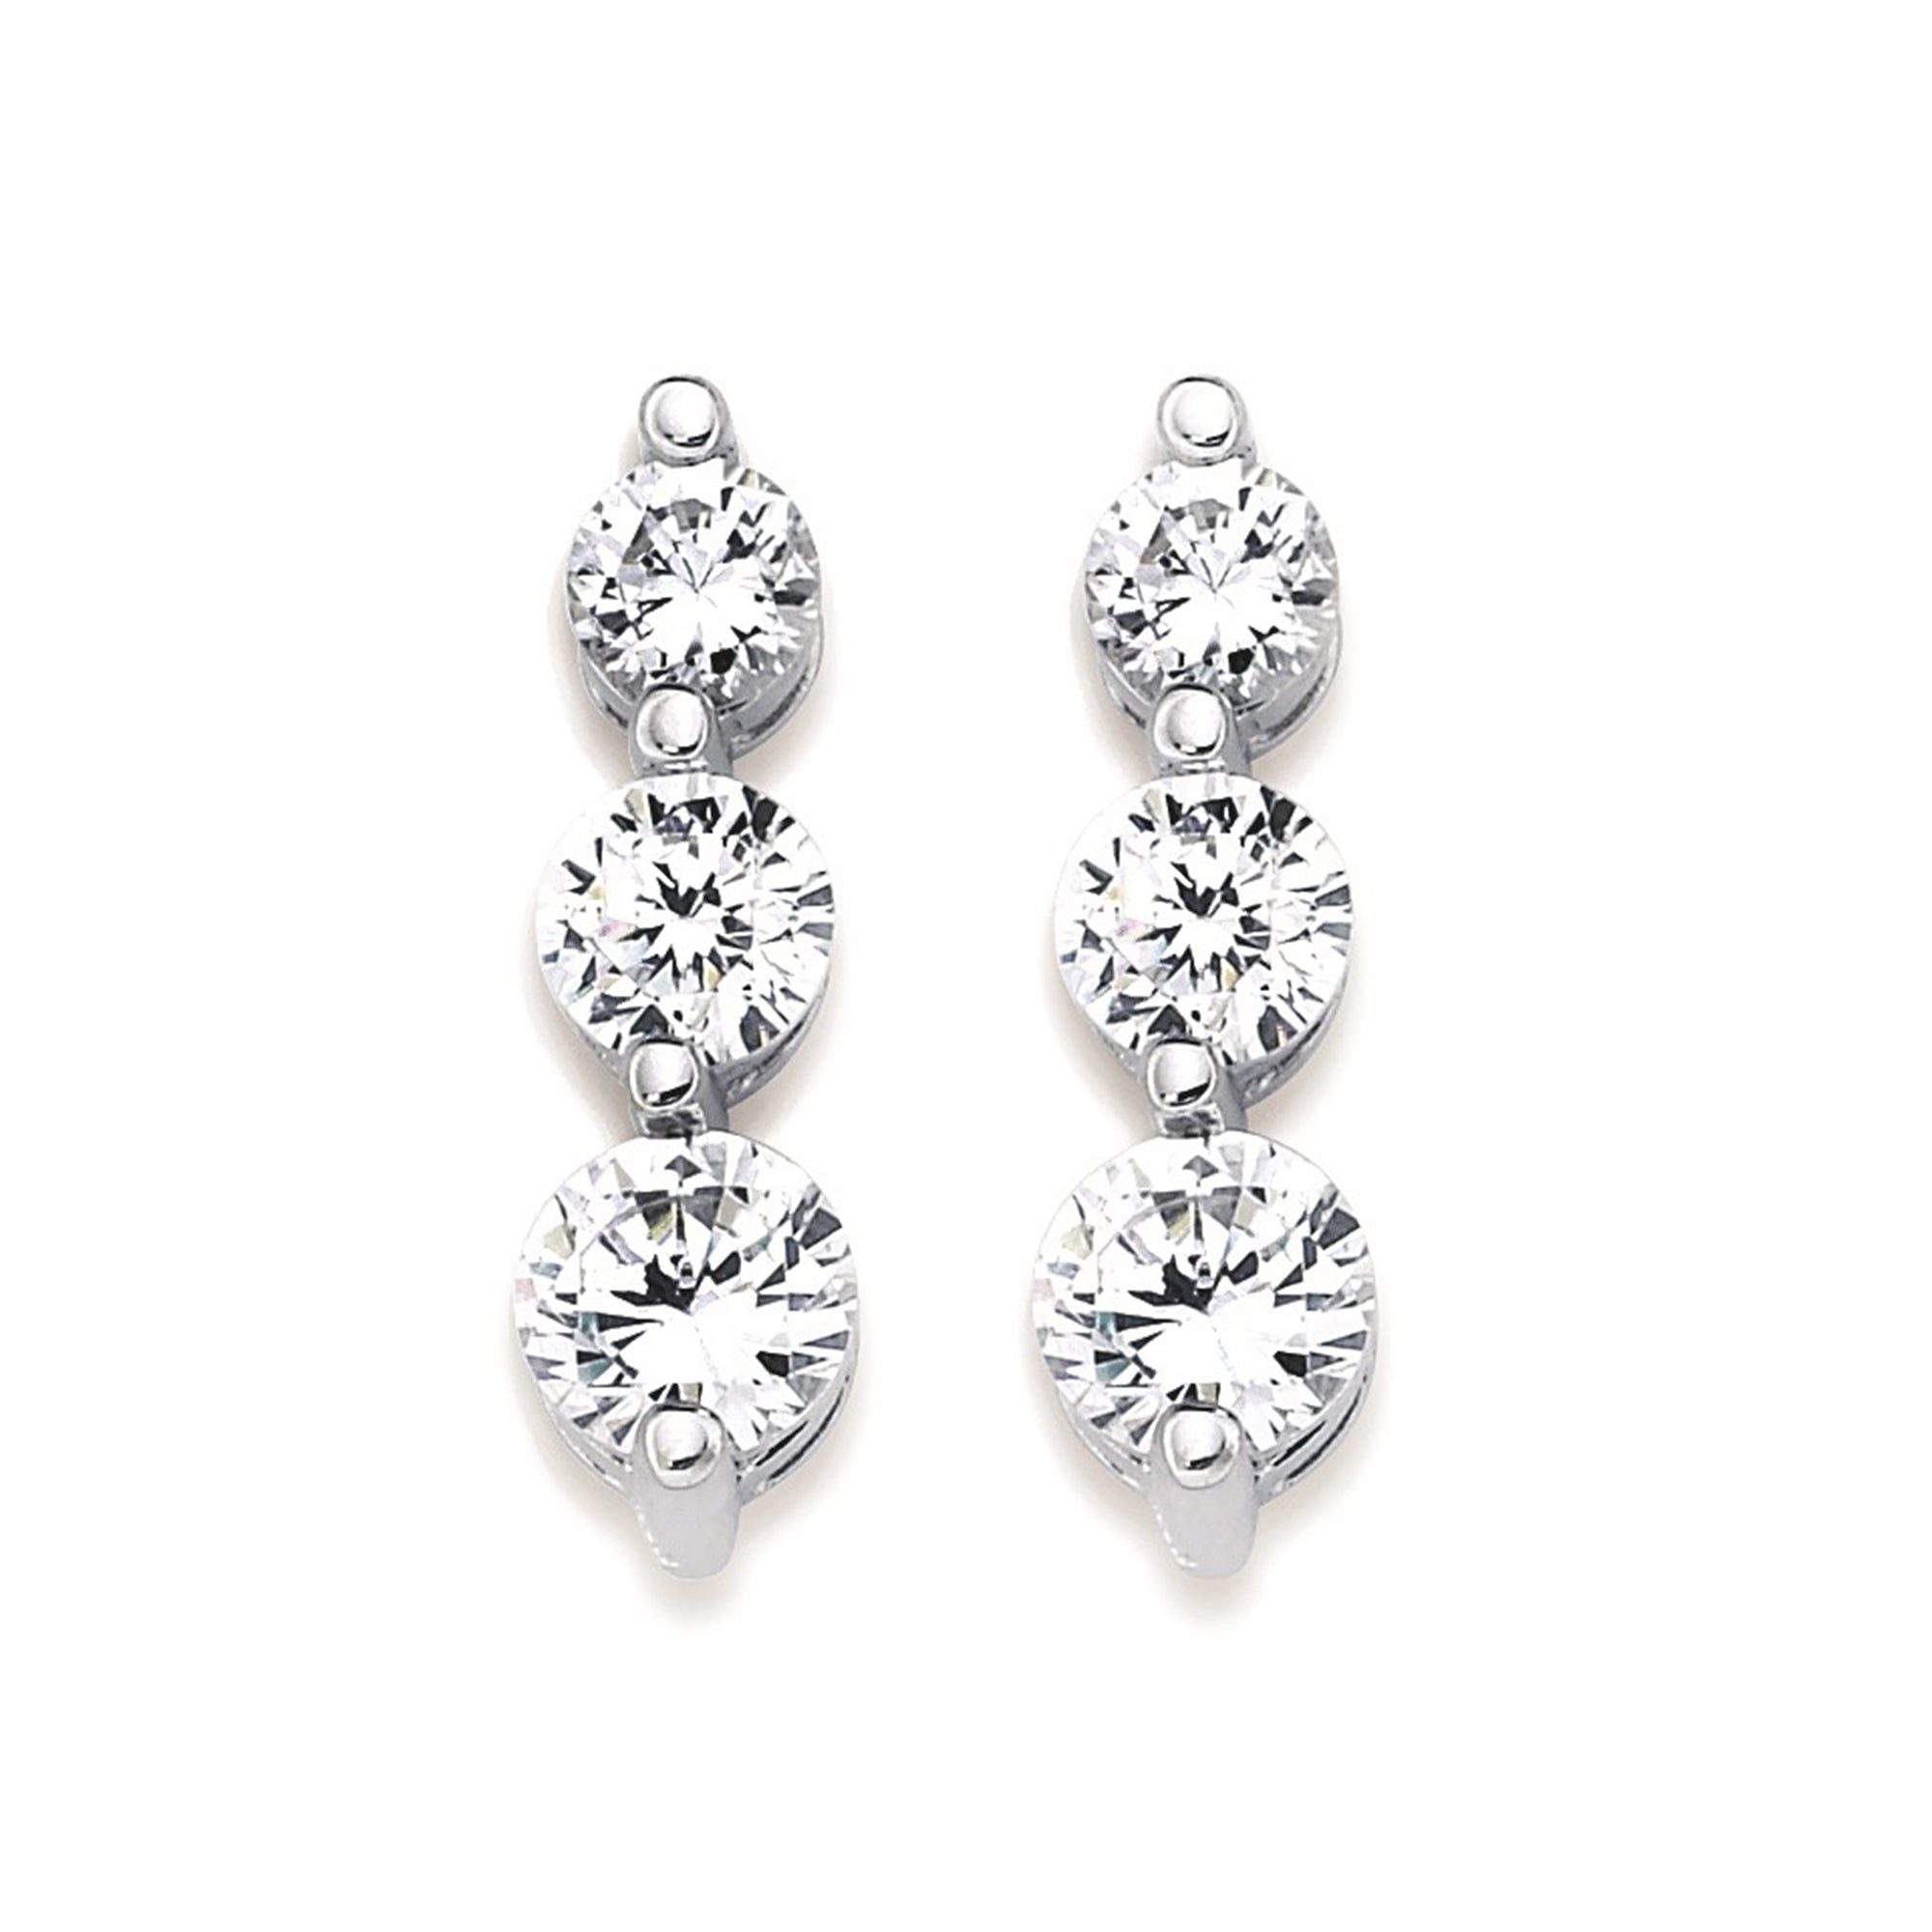 Three Diamond Drop Earrings in White, Yellow or Rose Gold - Talisman Collection Fine Jewelers